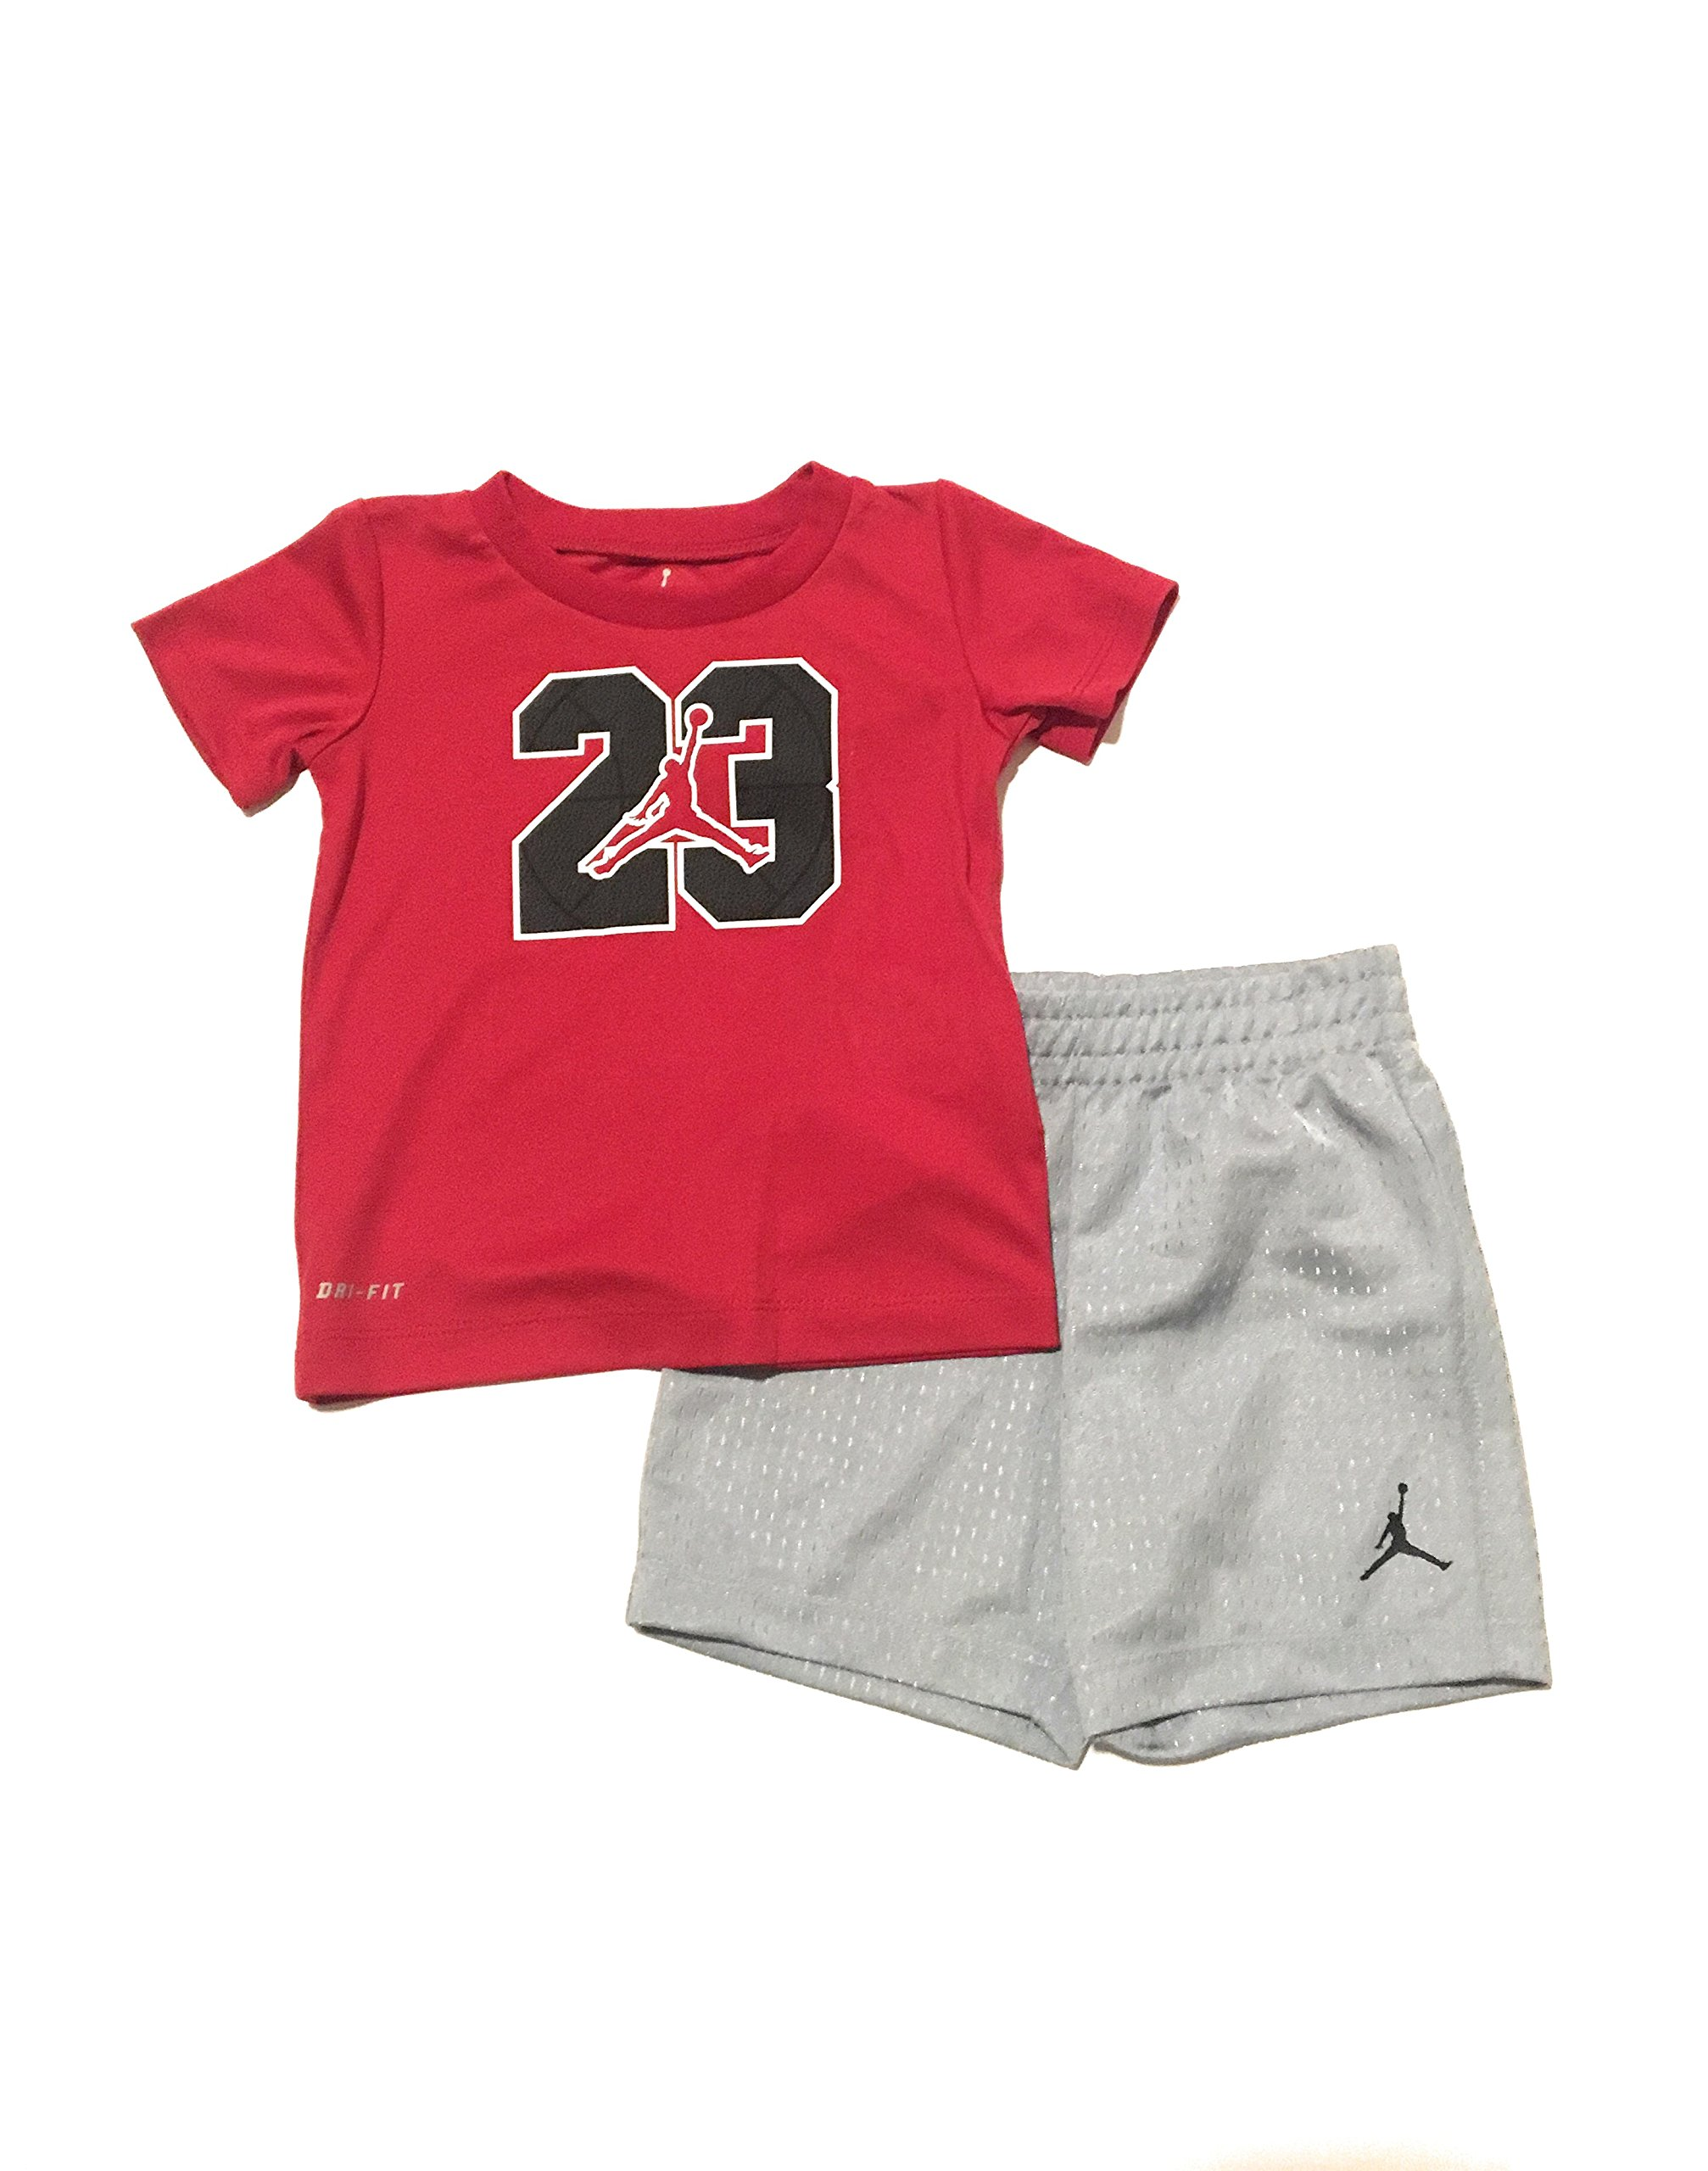 Jordan Jumpman Infant Boys T-Shirt and Shorts Set Red/Wolf Grey Size 24 Months